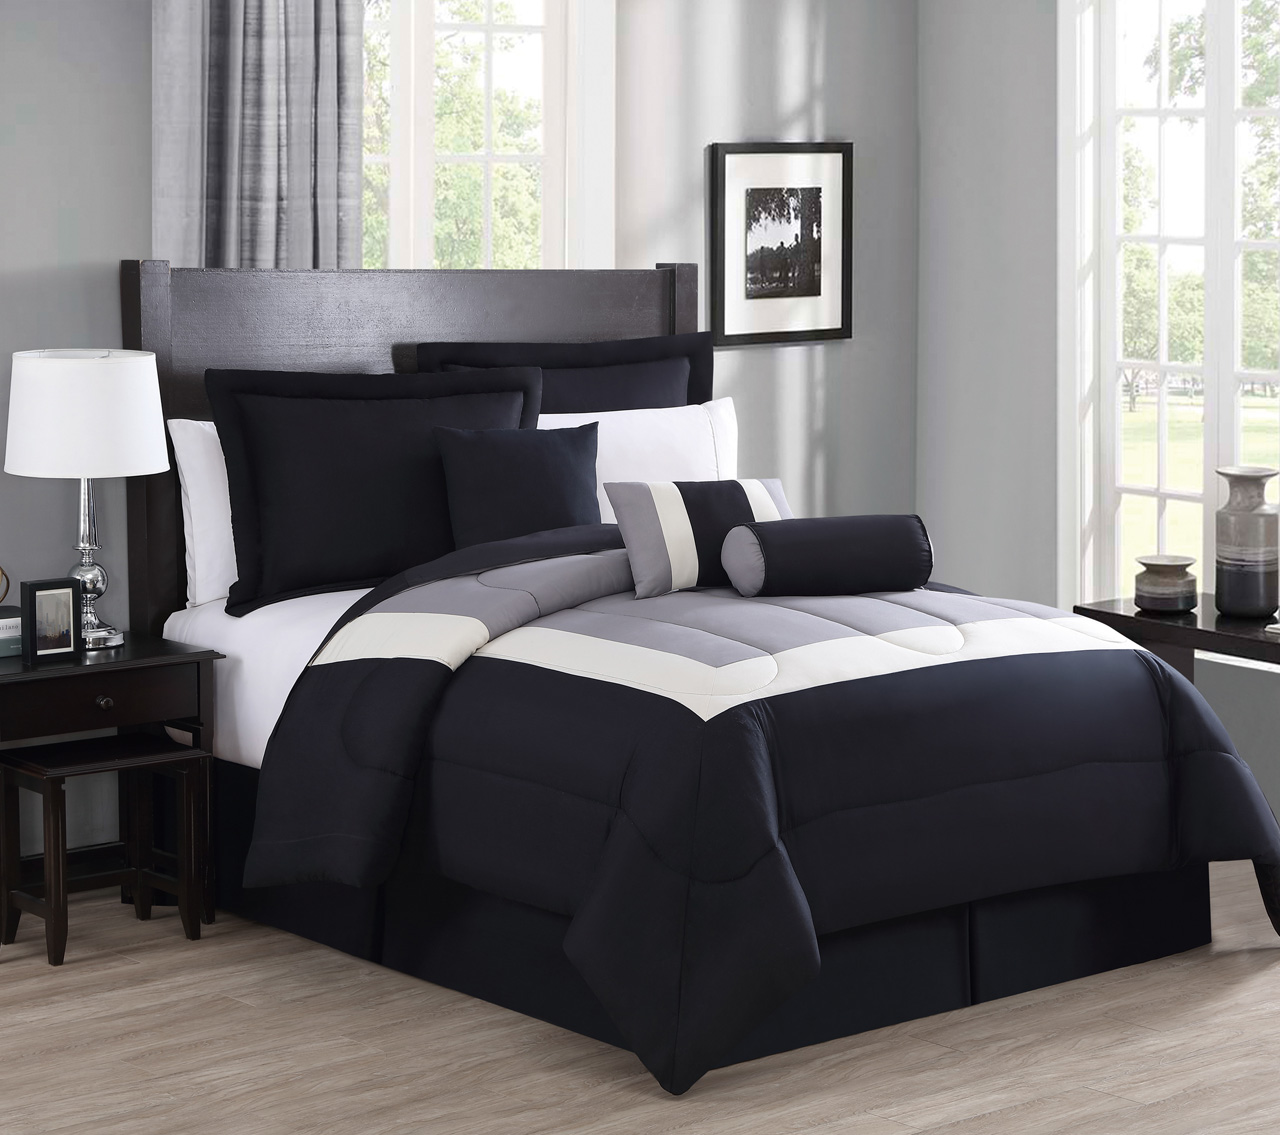 7 Piece Rosslyn Black Gray Comforter Set